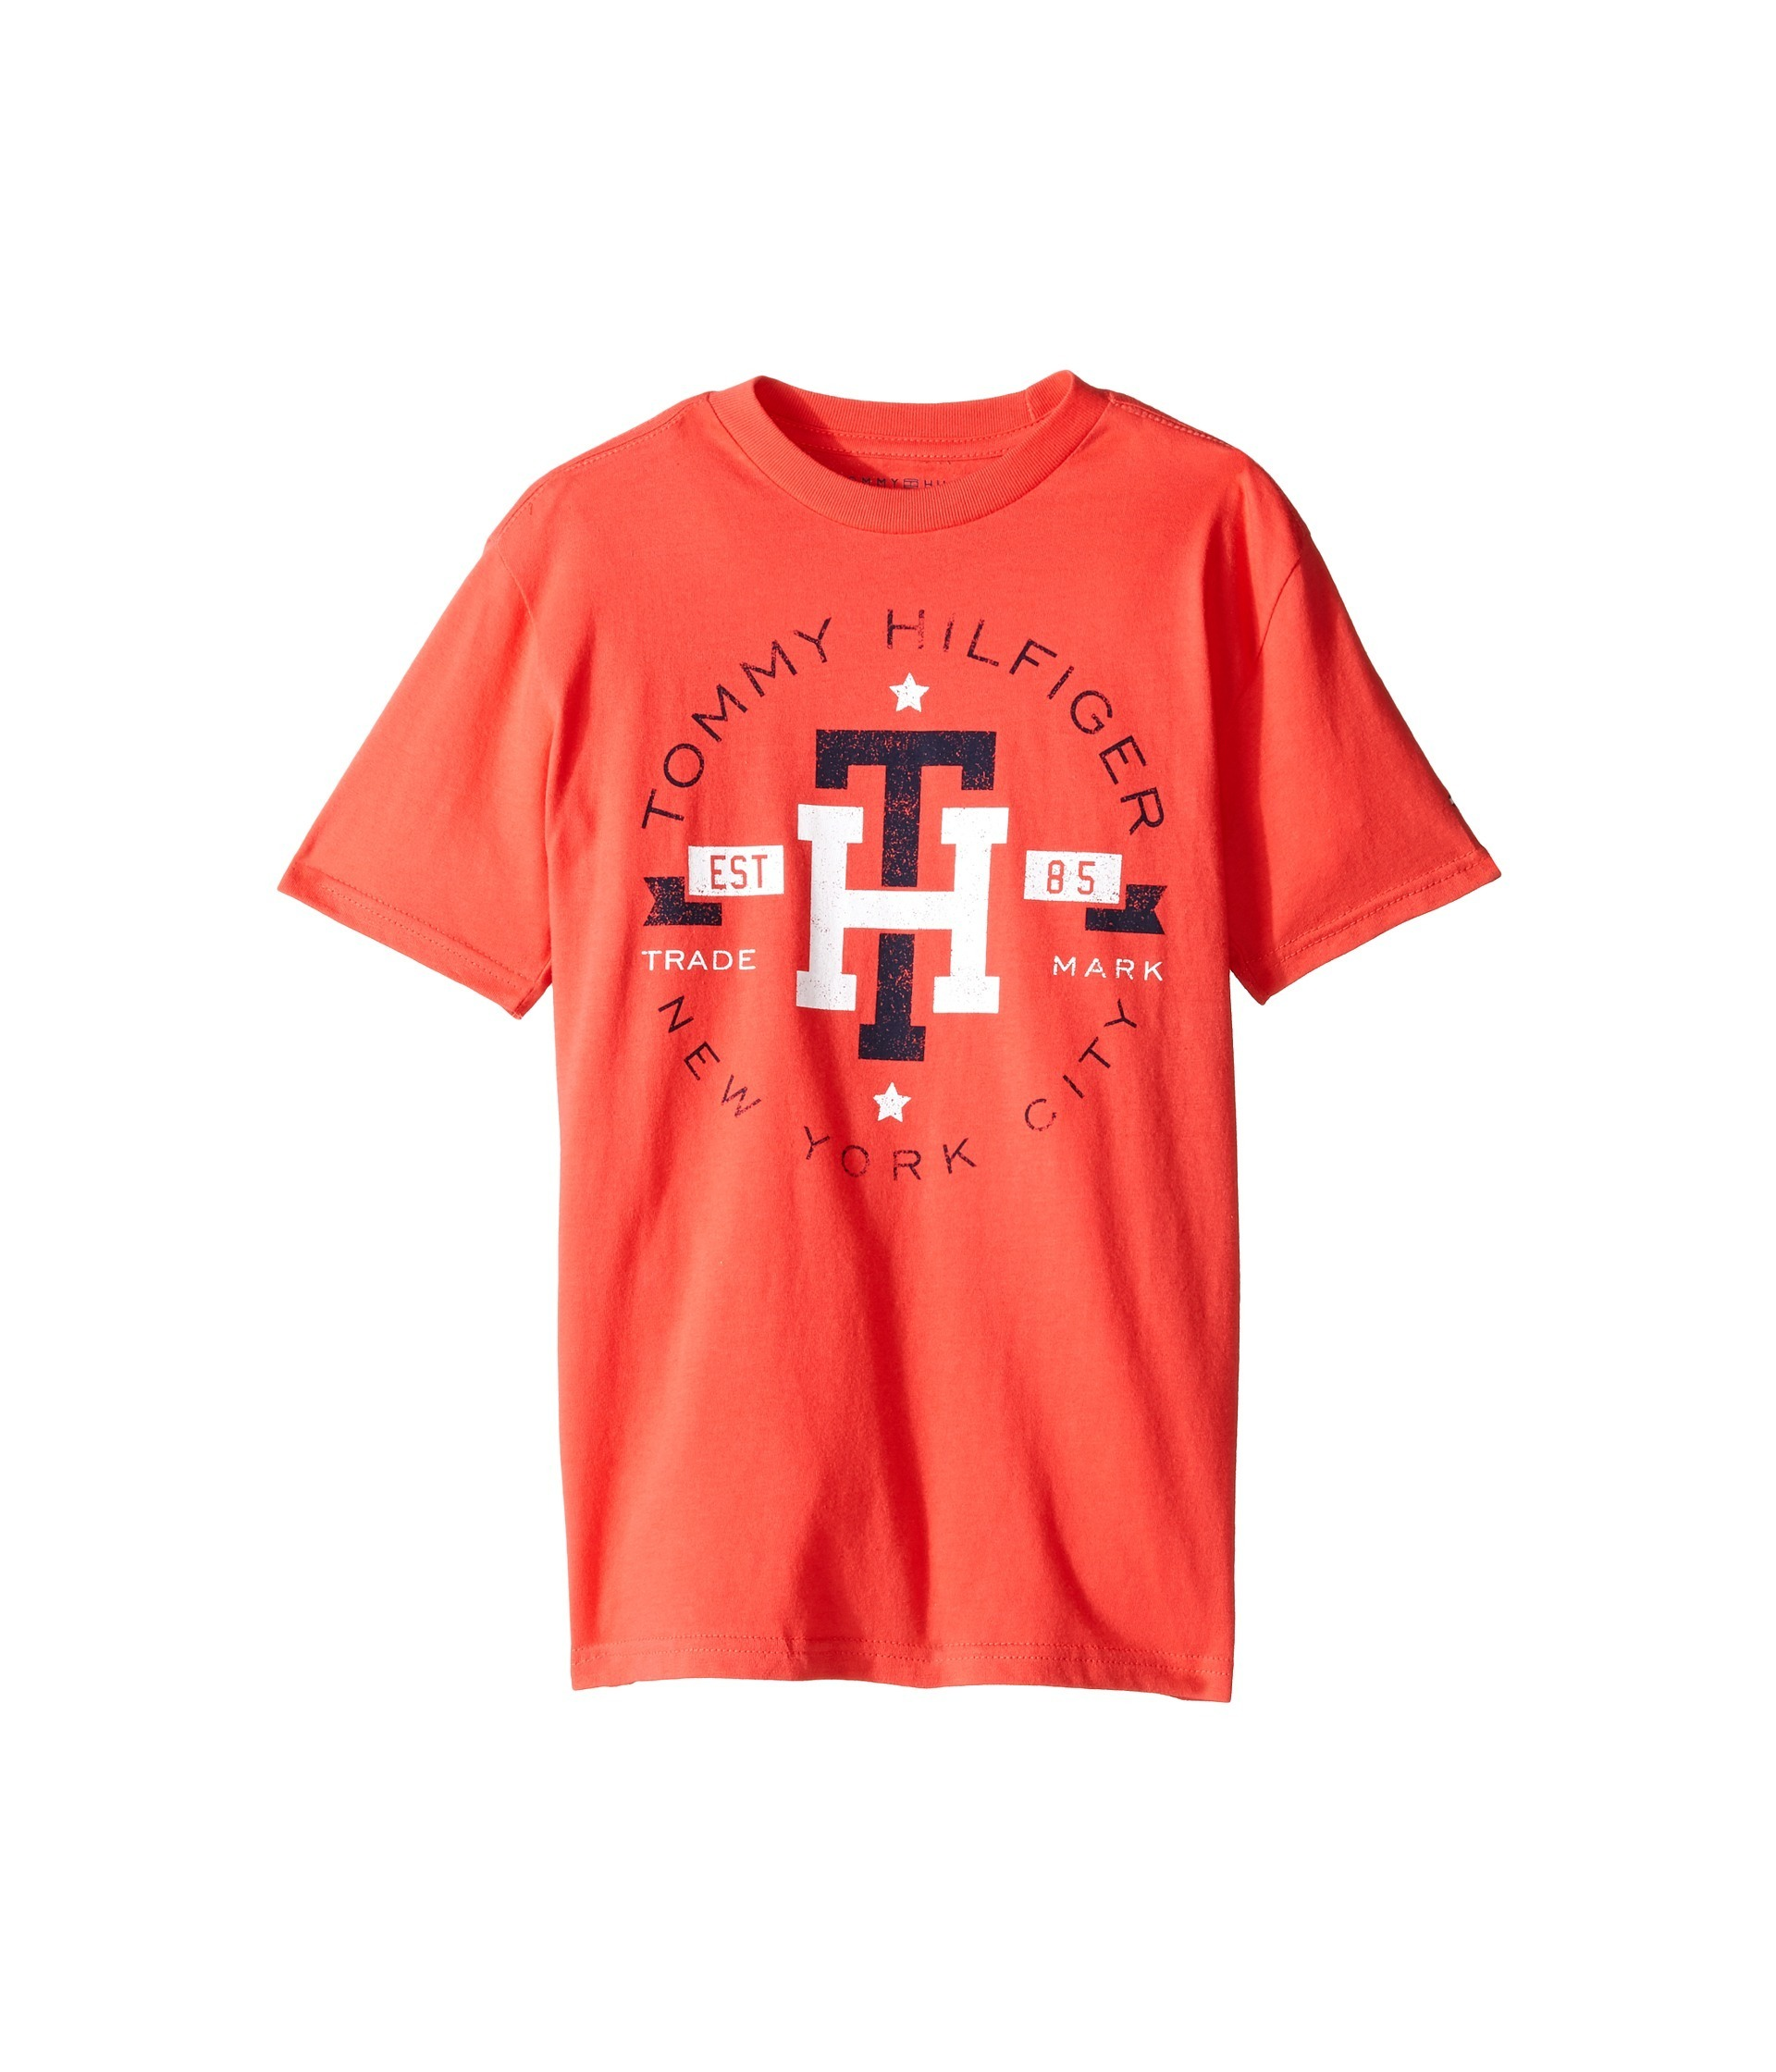 大人気★Tommy Hilfiger Kids Circa Mark Tee (Big 送料・関税込